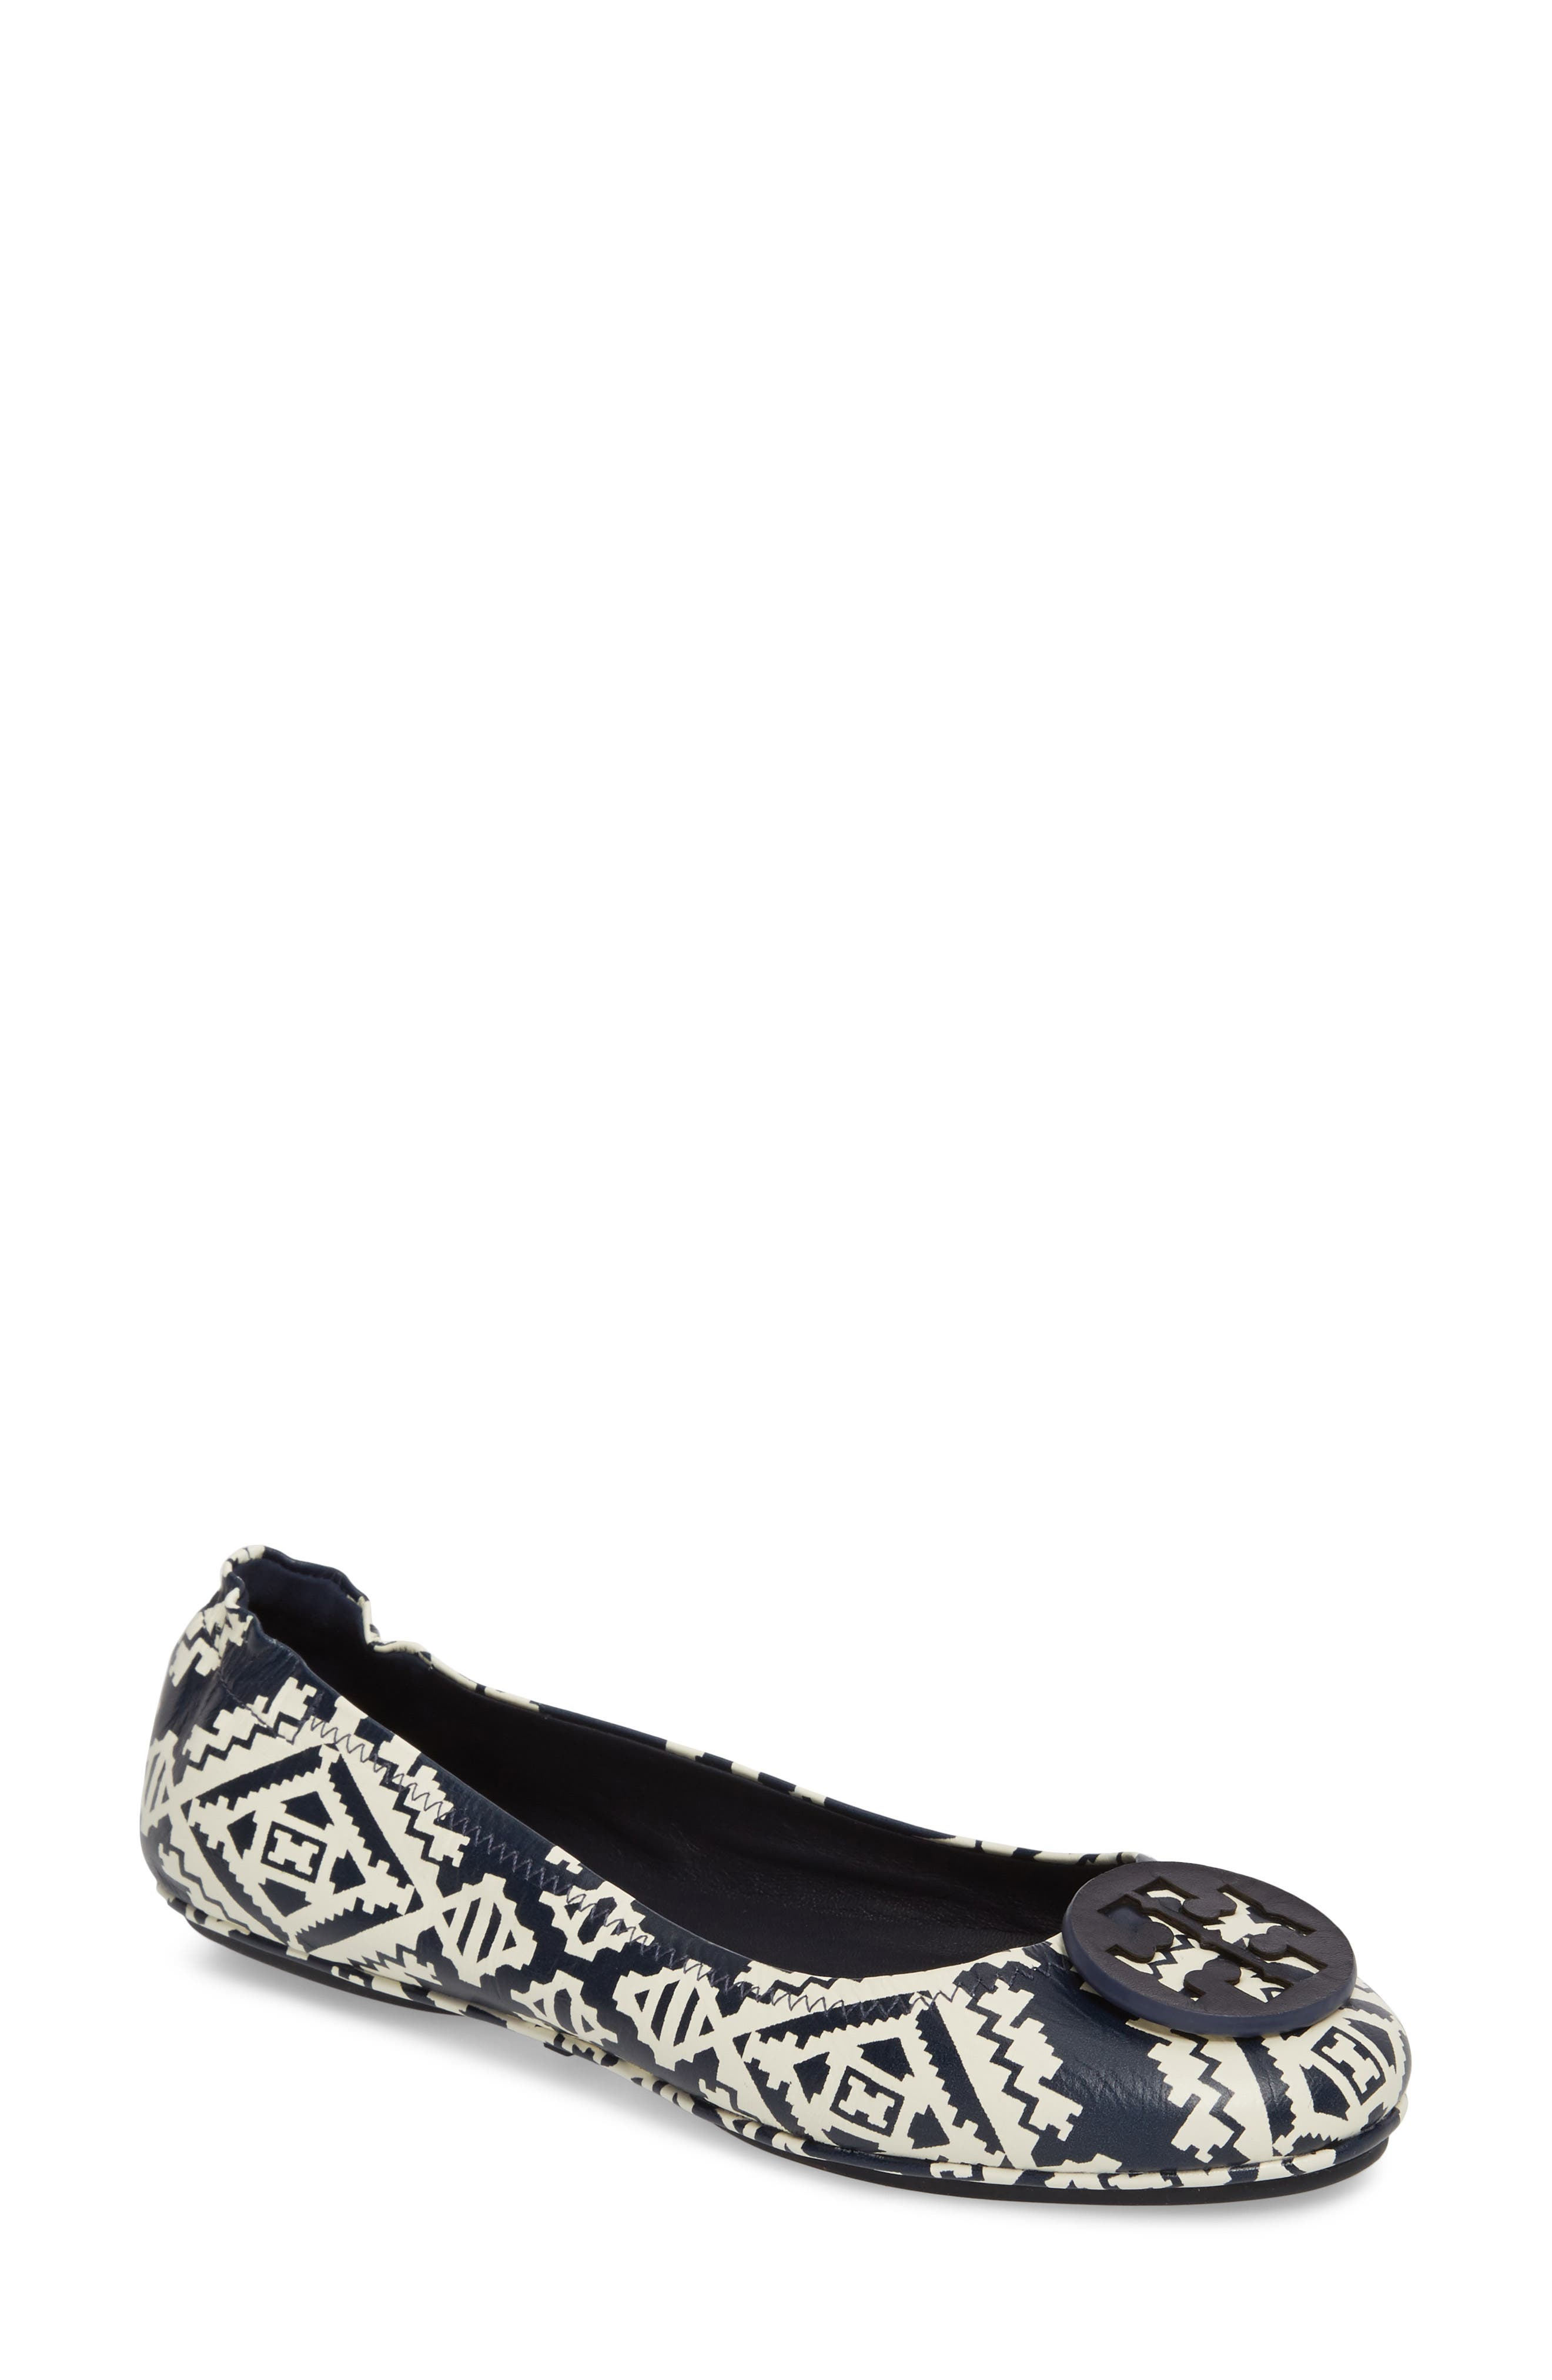 'Minnie' Travel Ballet Flat,                         Main,                         color, Tapestry Geo